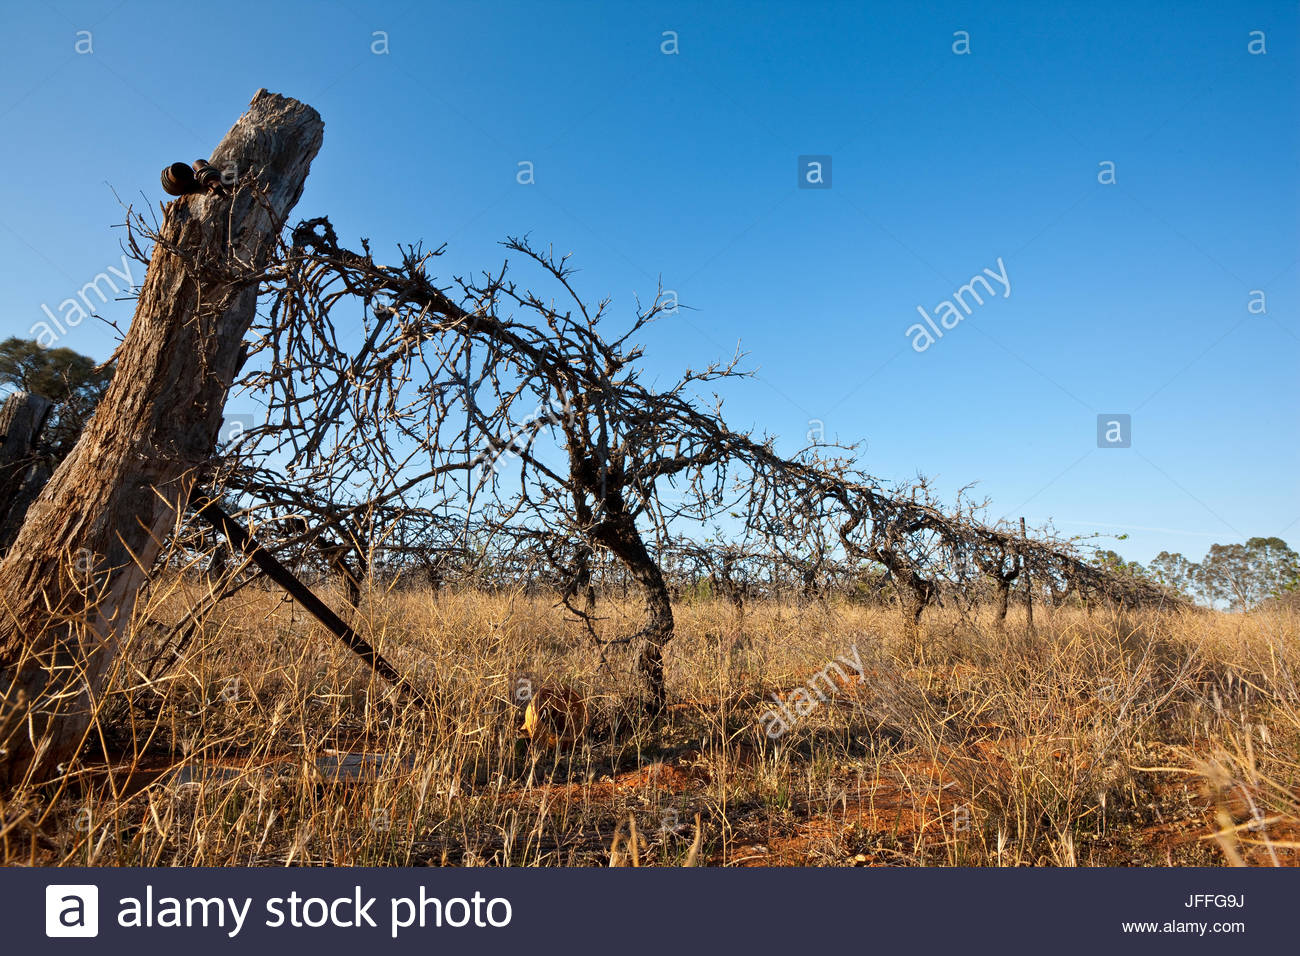 Low comodity prices and continueing drought, forced many farmers from their land in Murray Darling Basin region - Stock Image